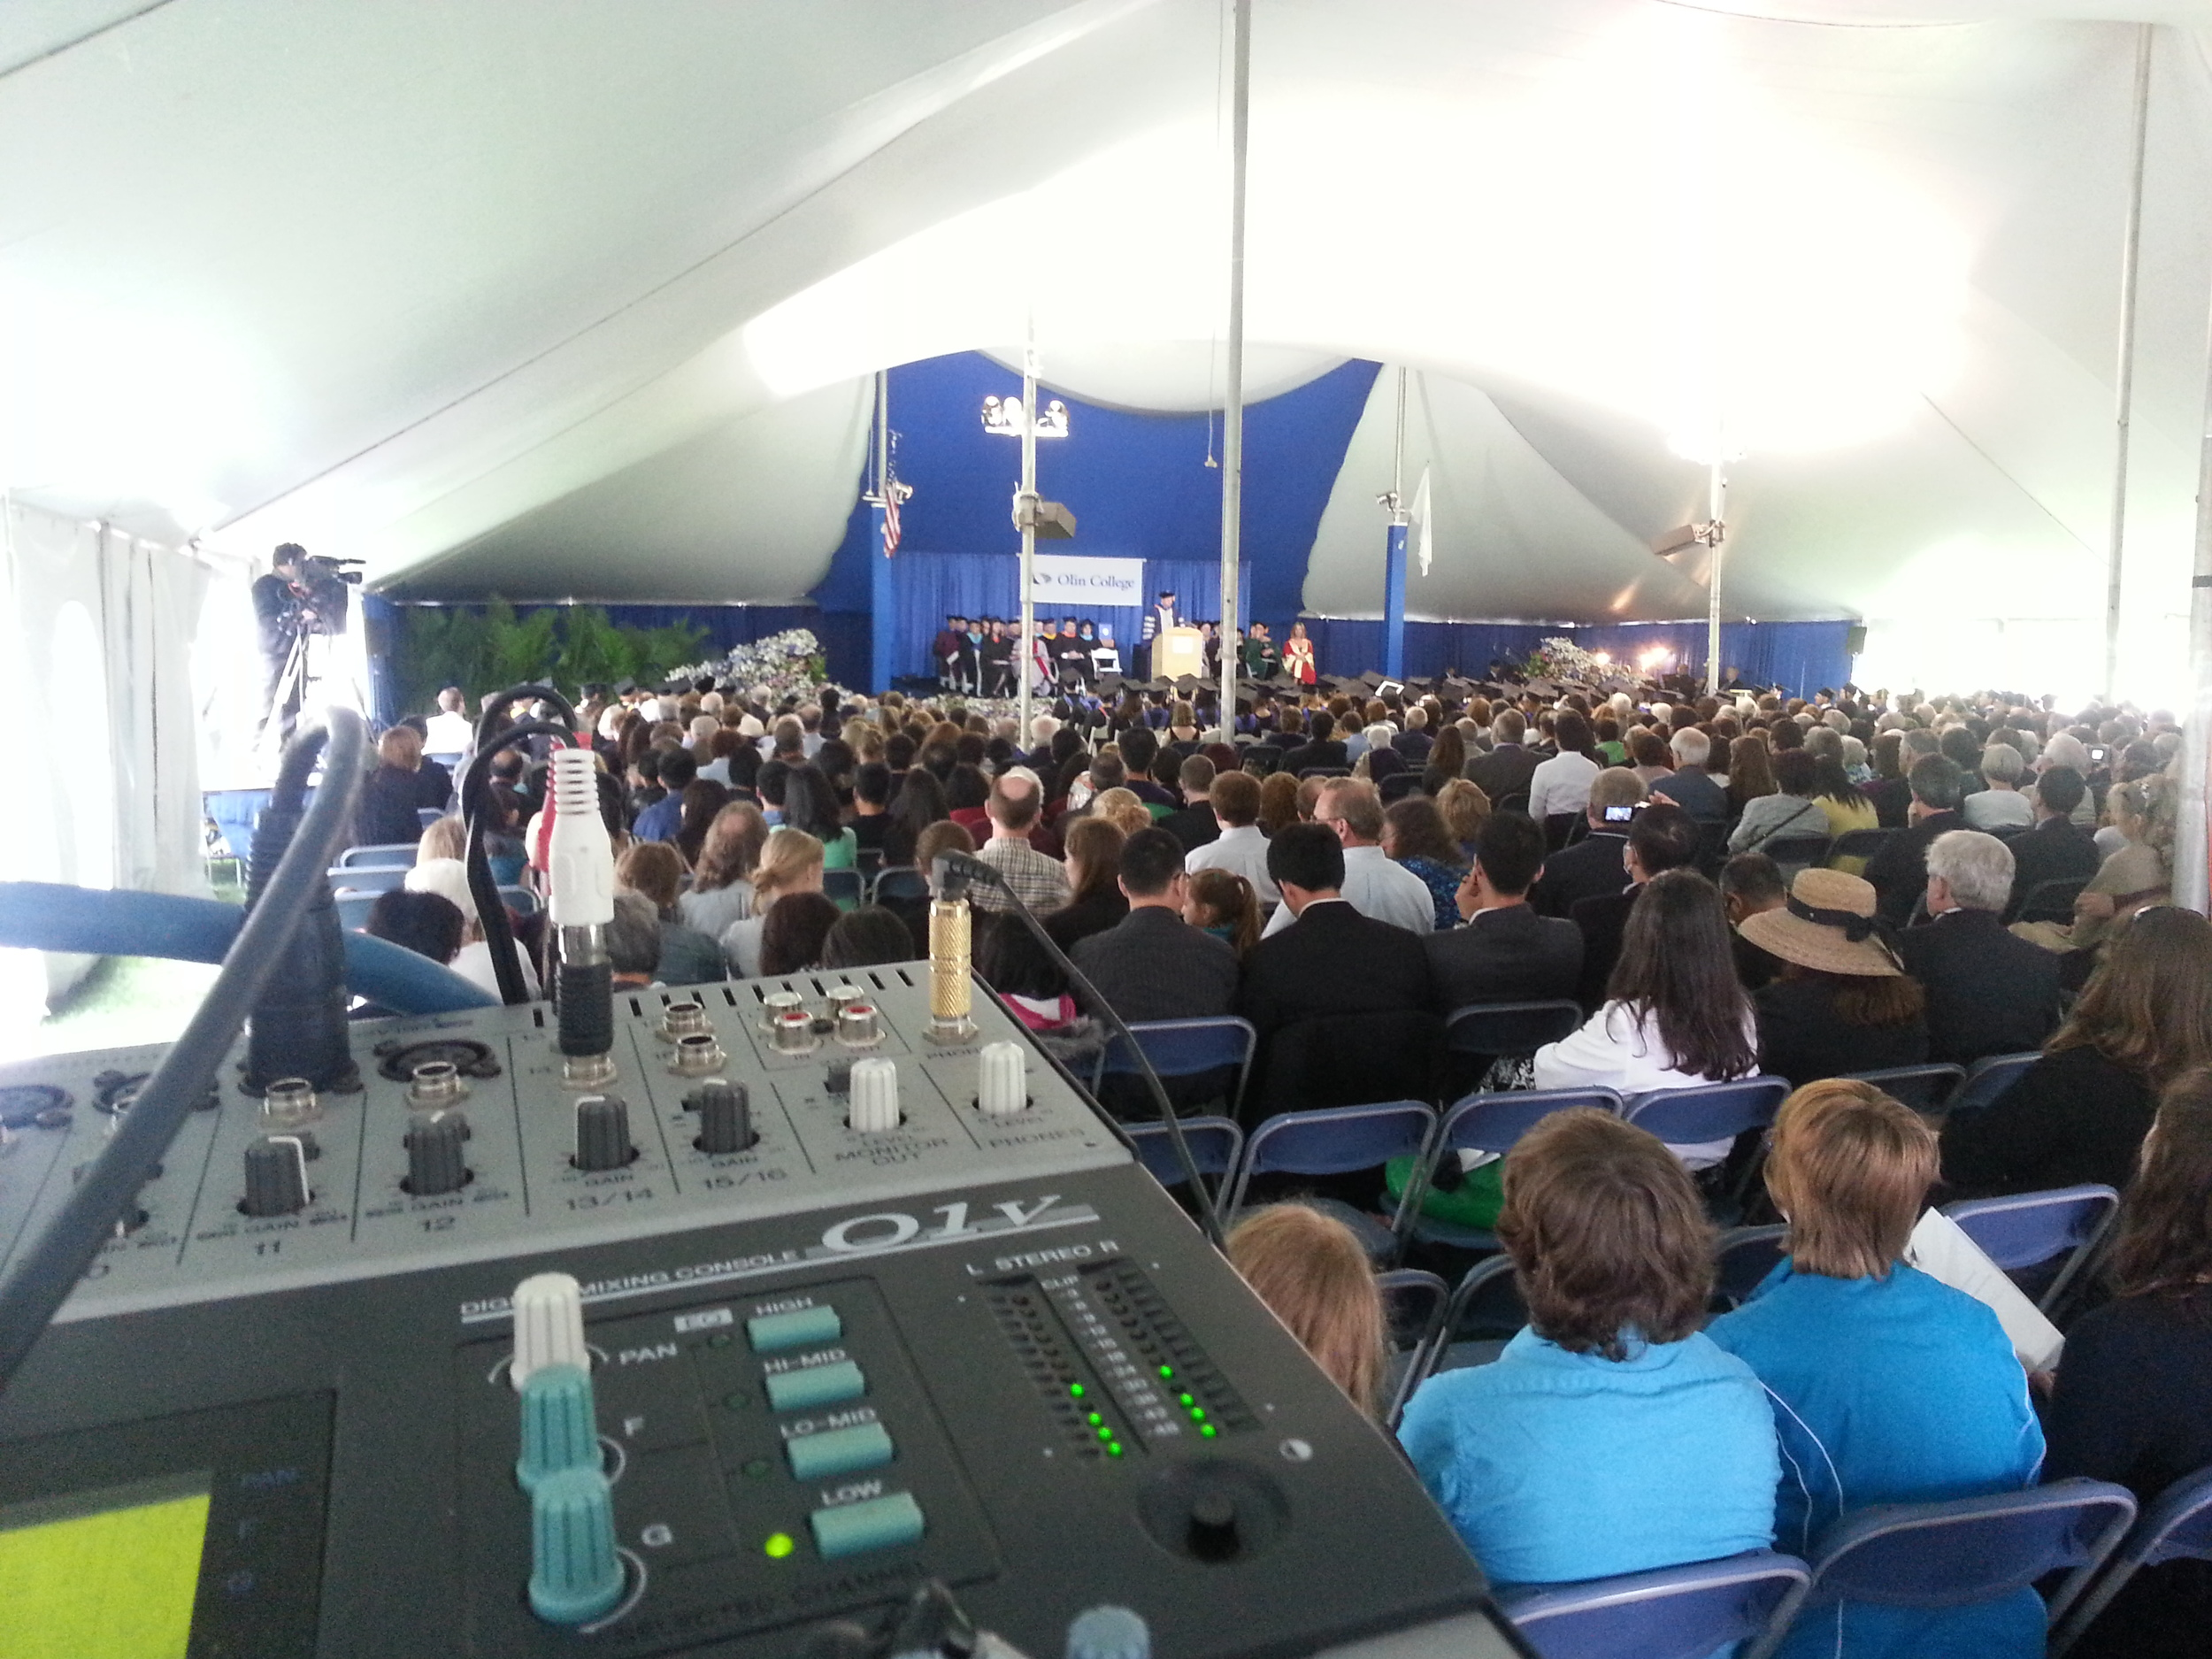 The 2013 Olin College Commencement. Two cameras, a PA system, and some very smart young people.